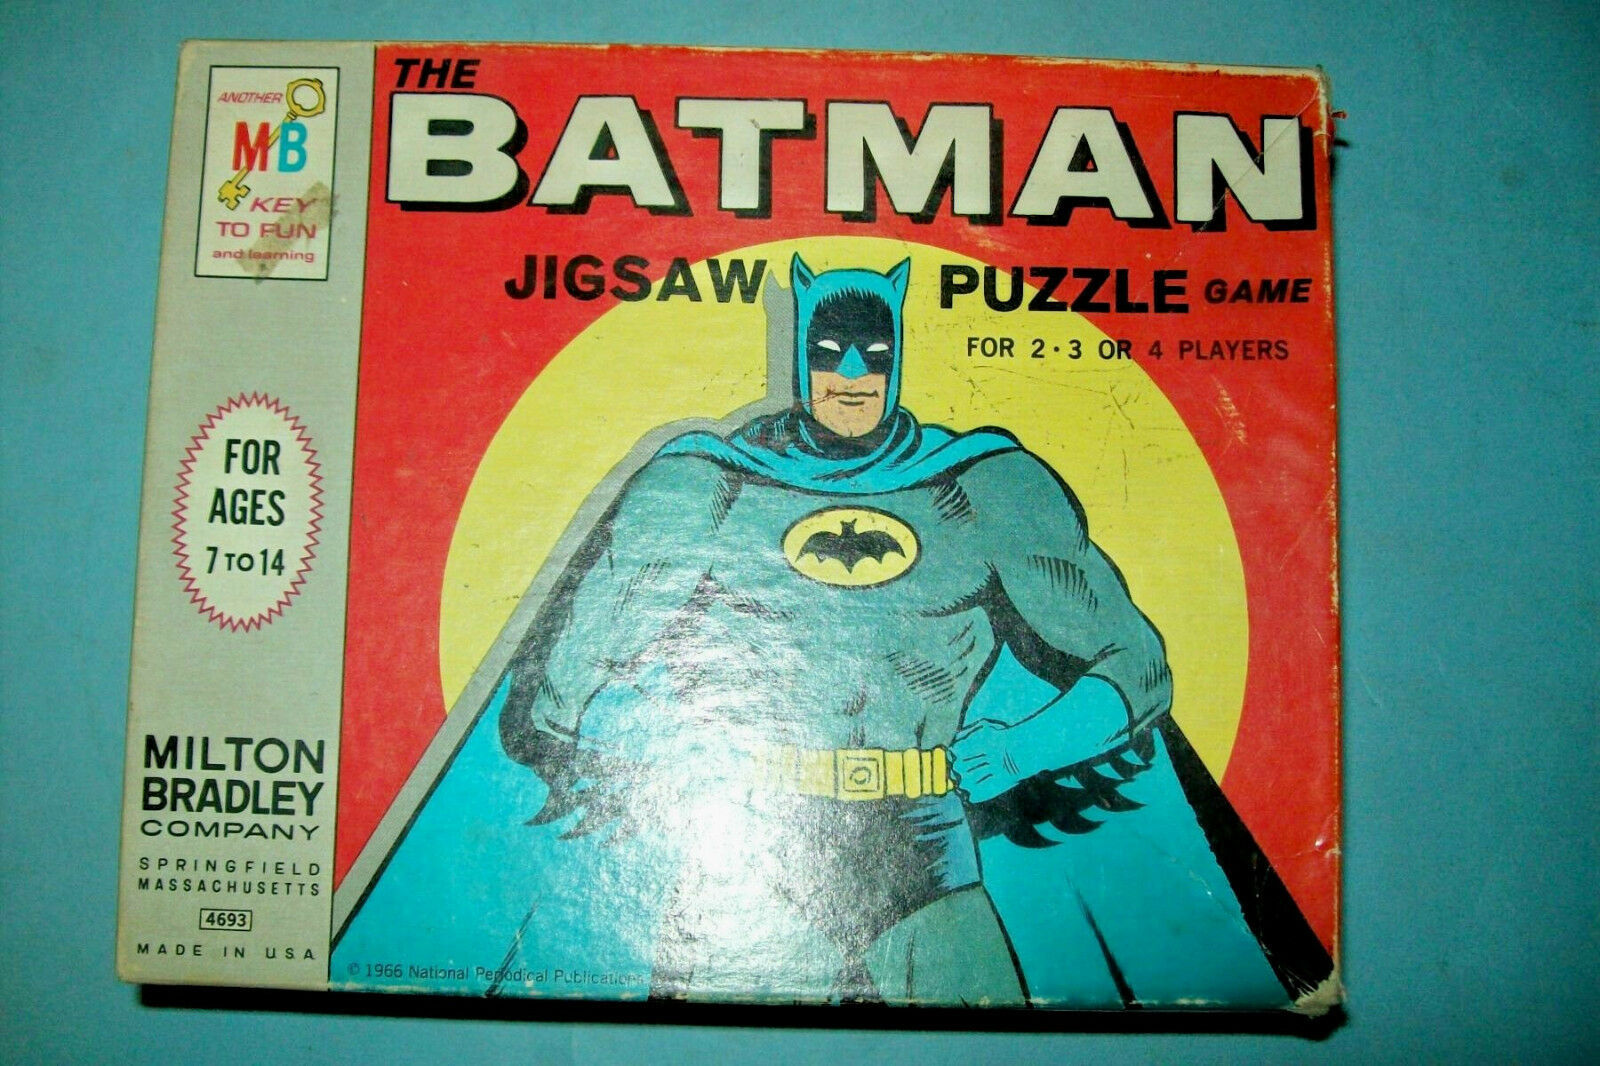 1966 The Batman Jigsaw Puzzle Game by Milton Bradley   Complete - $29.40